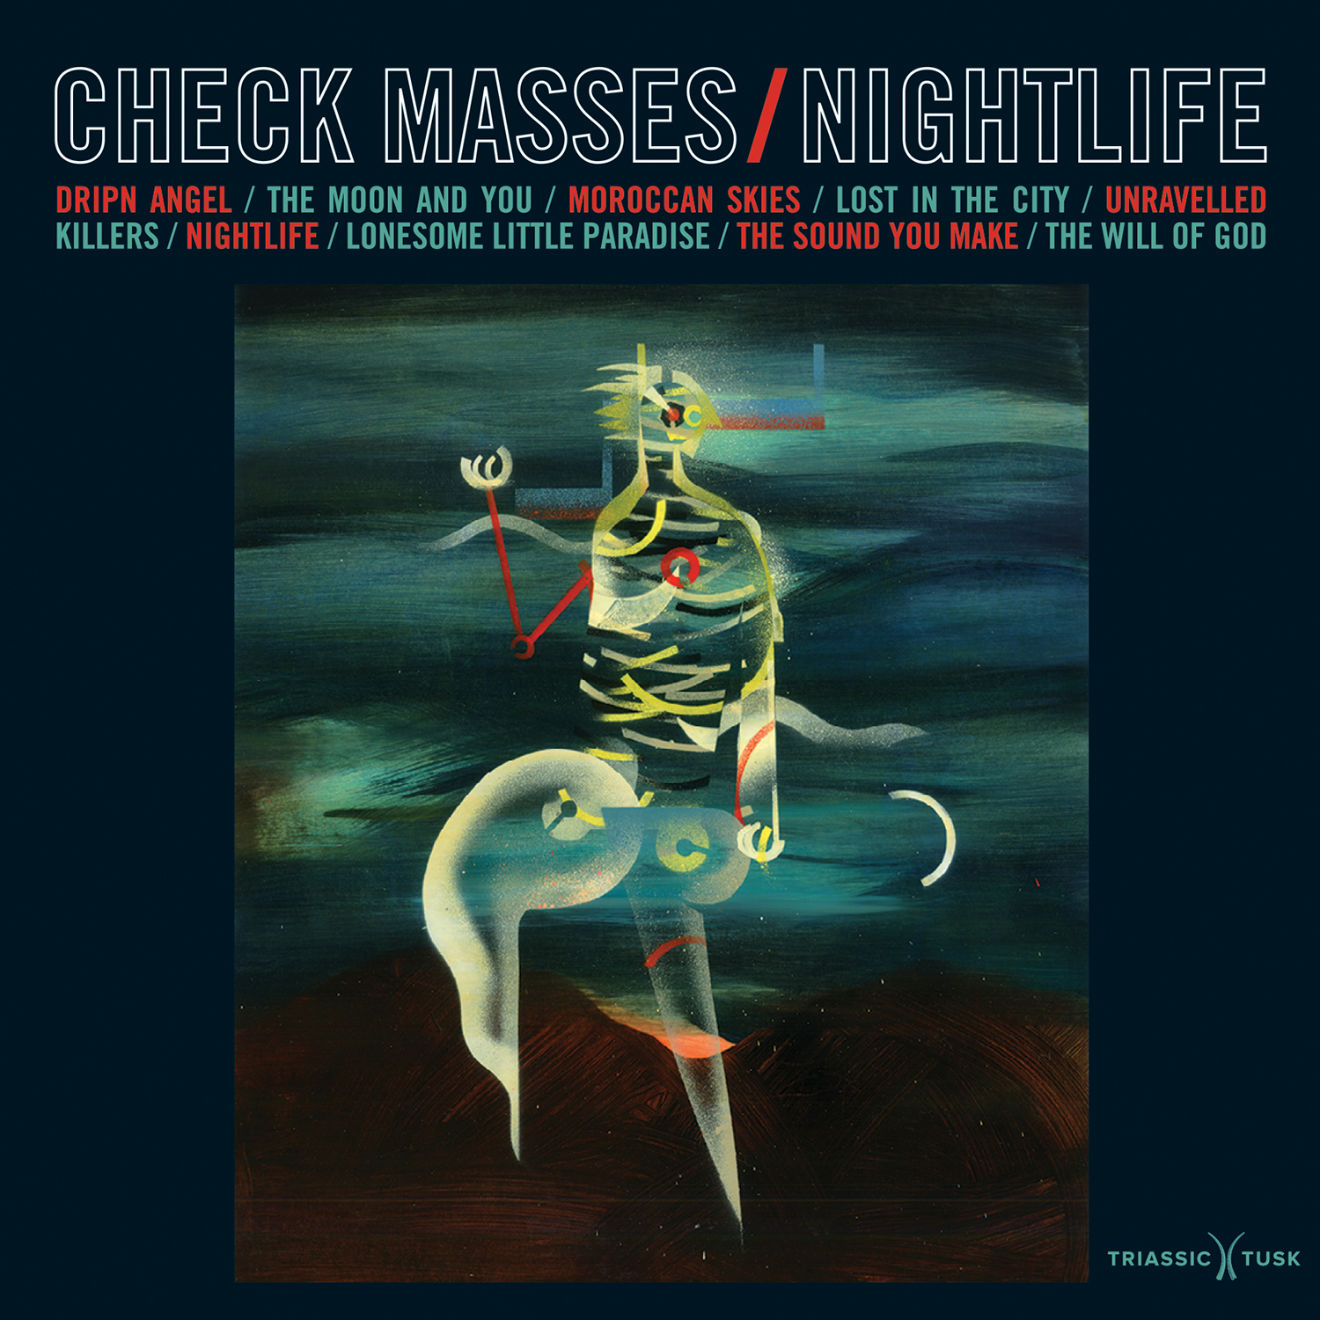 Check Masses – Nightlight album artwork